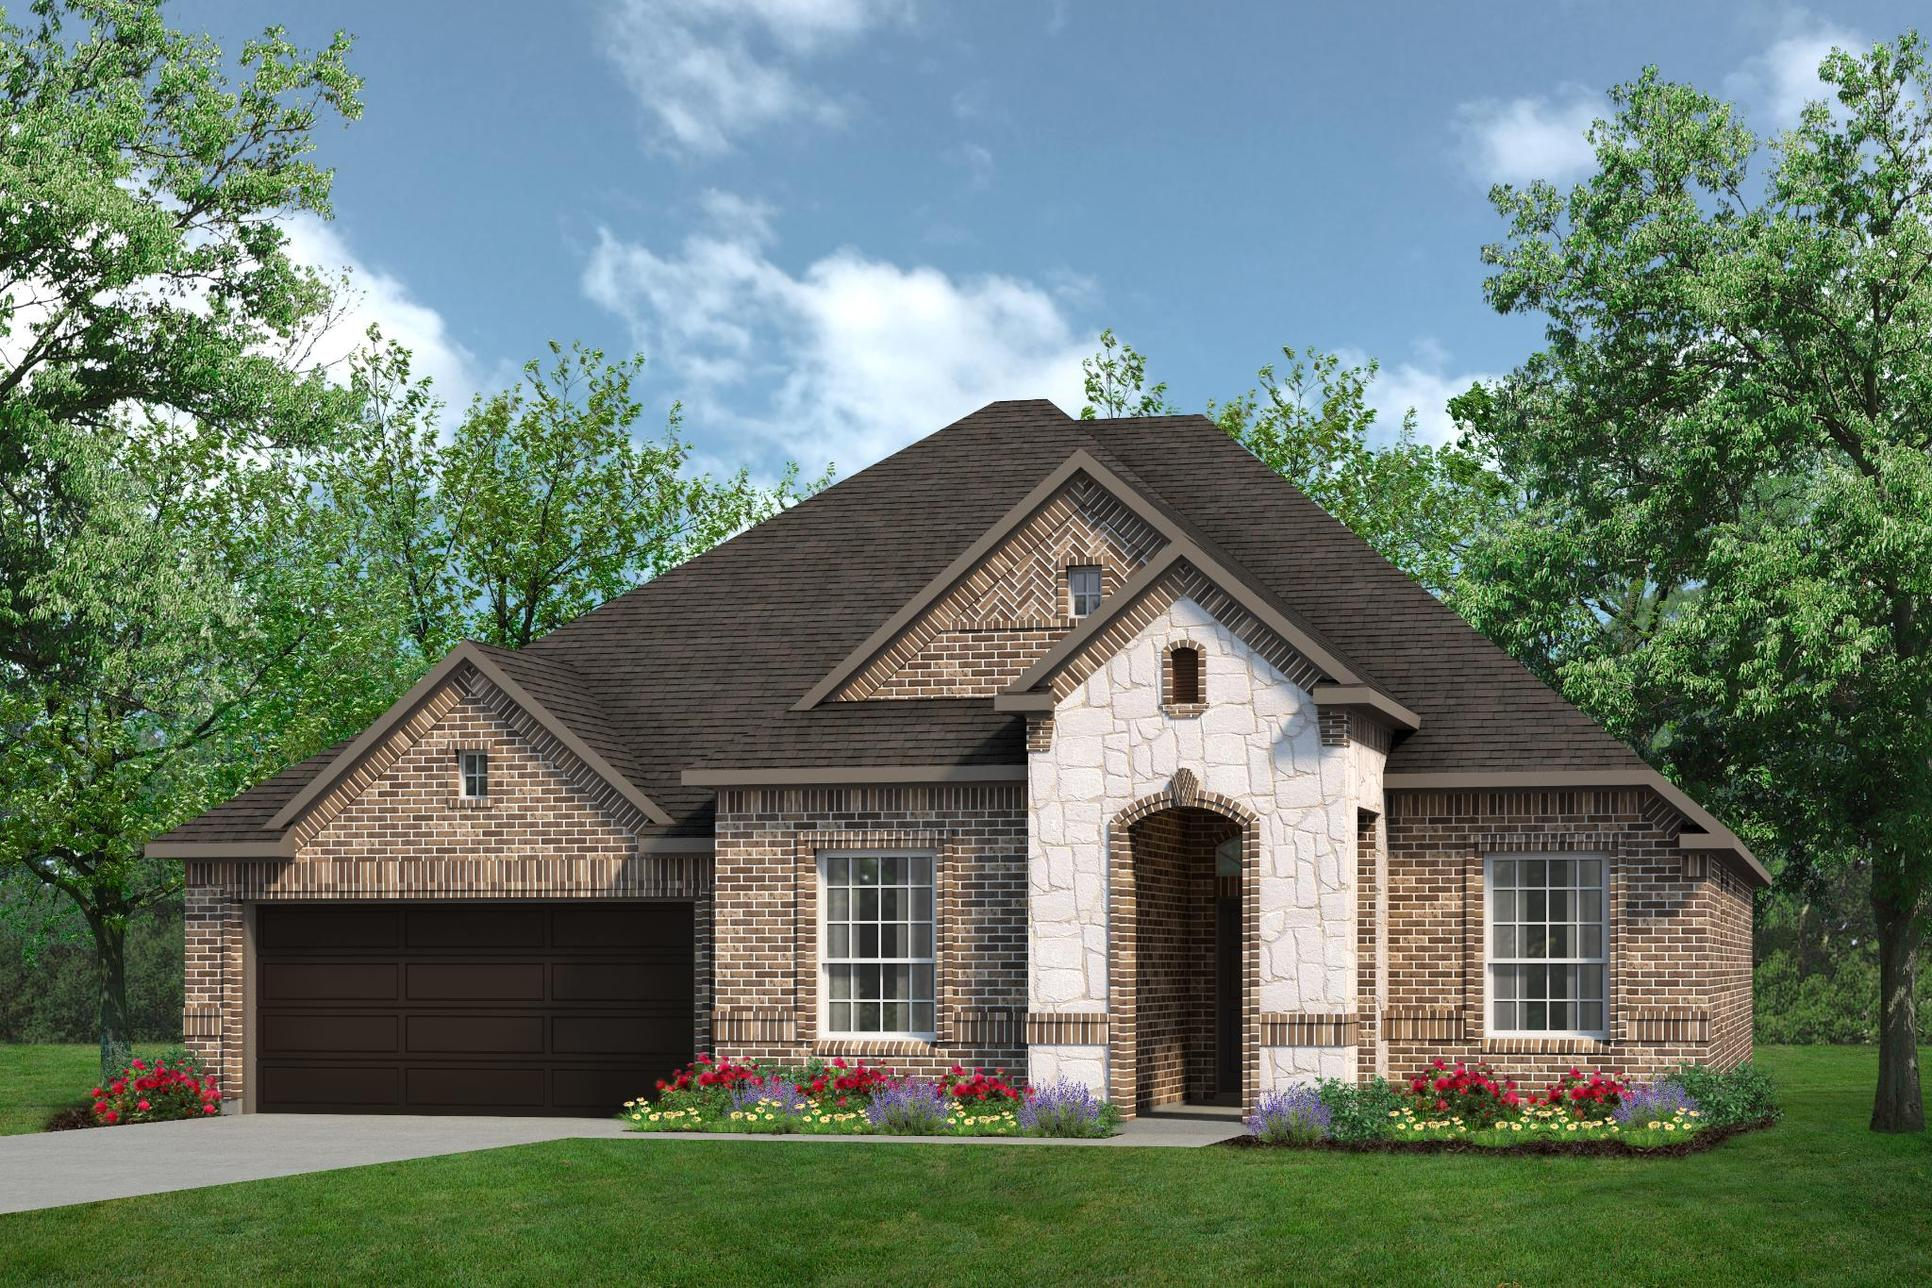 Exterior:2434 A with Stone